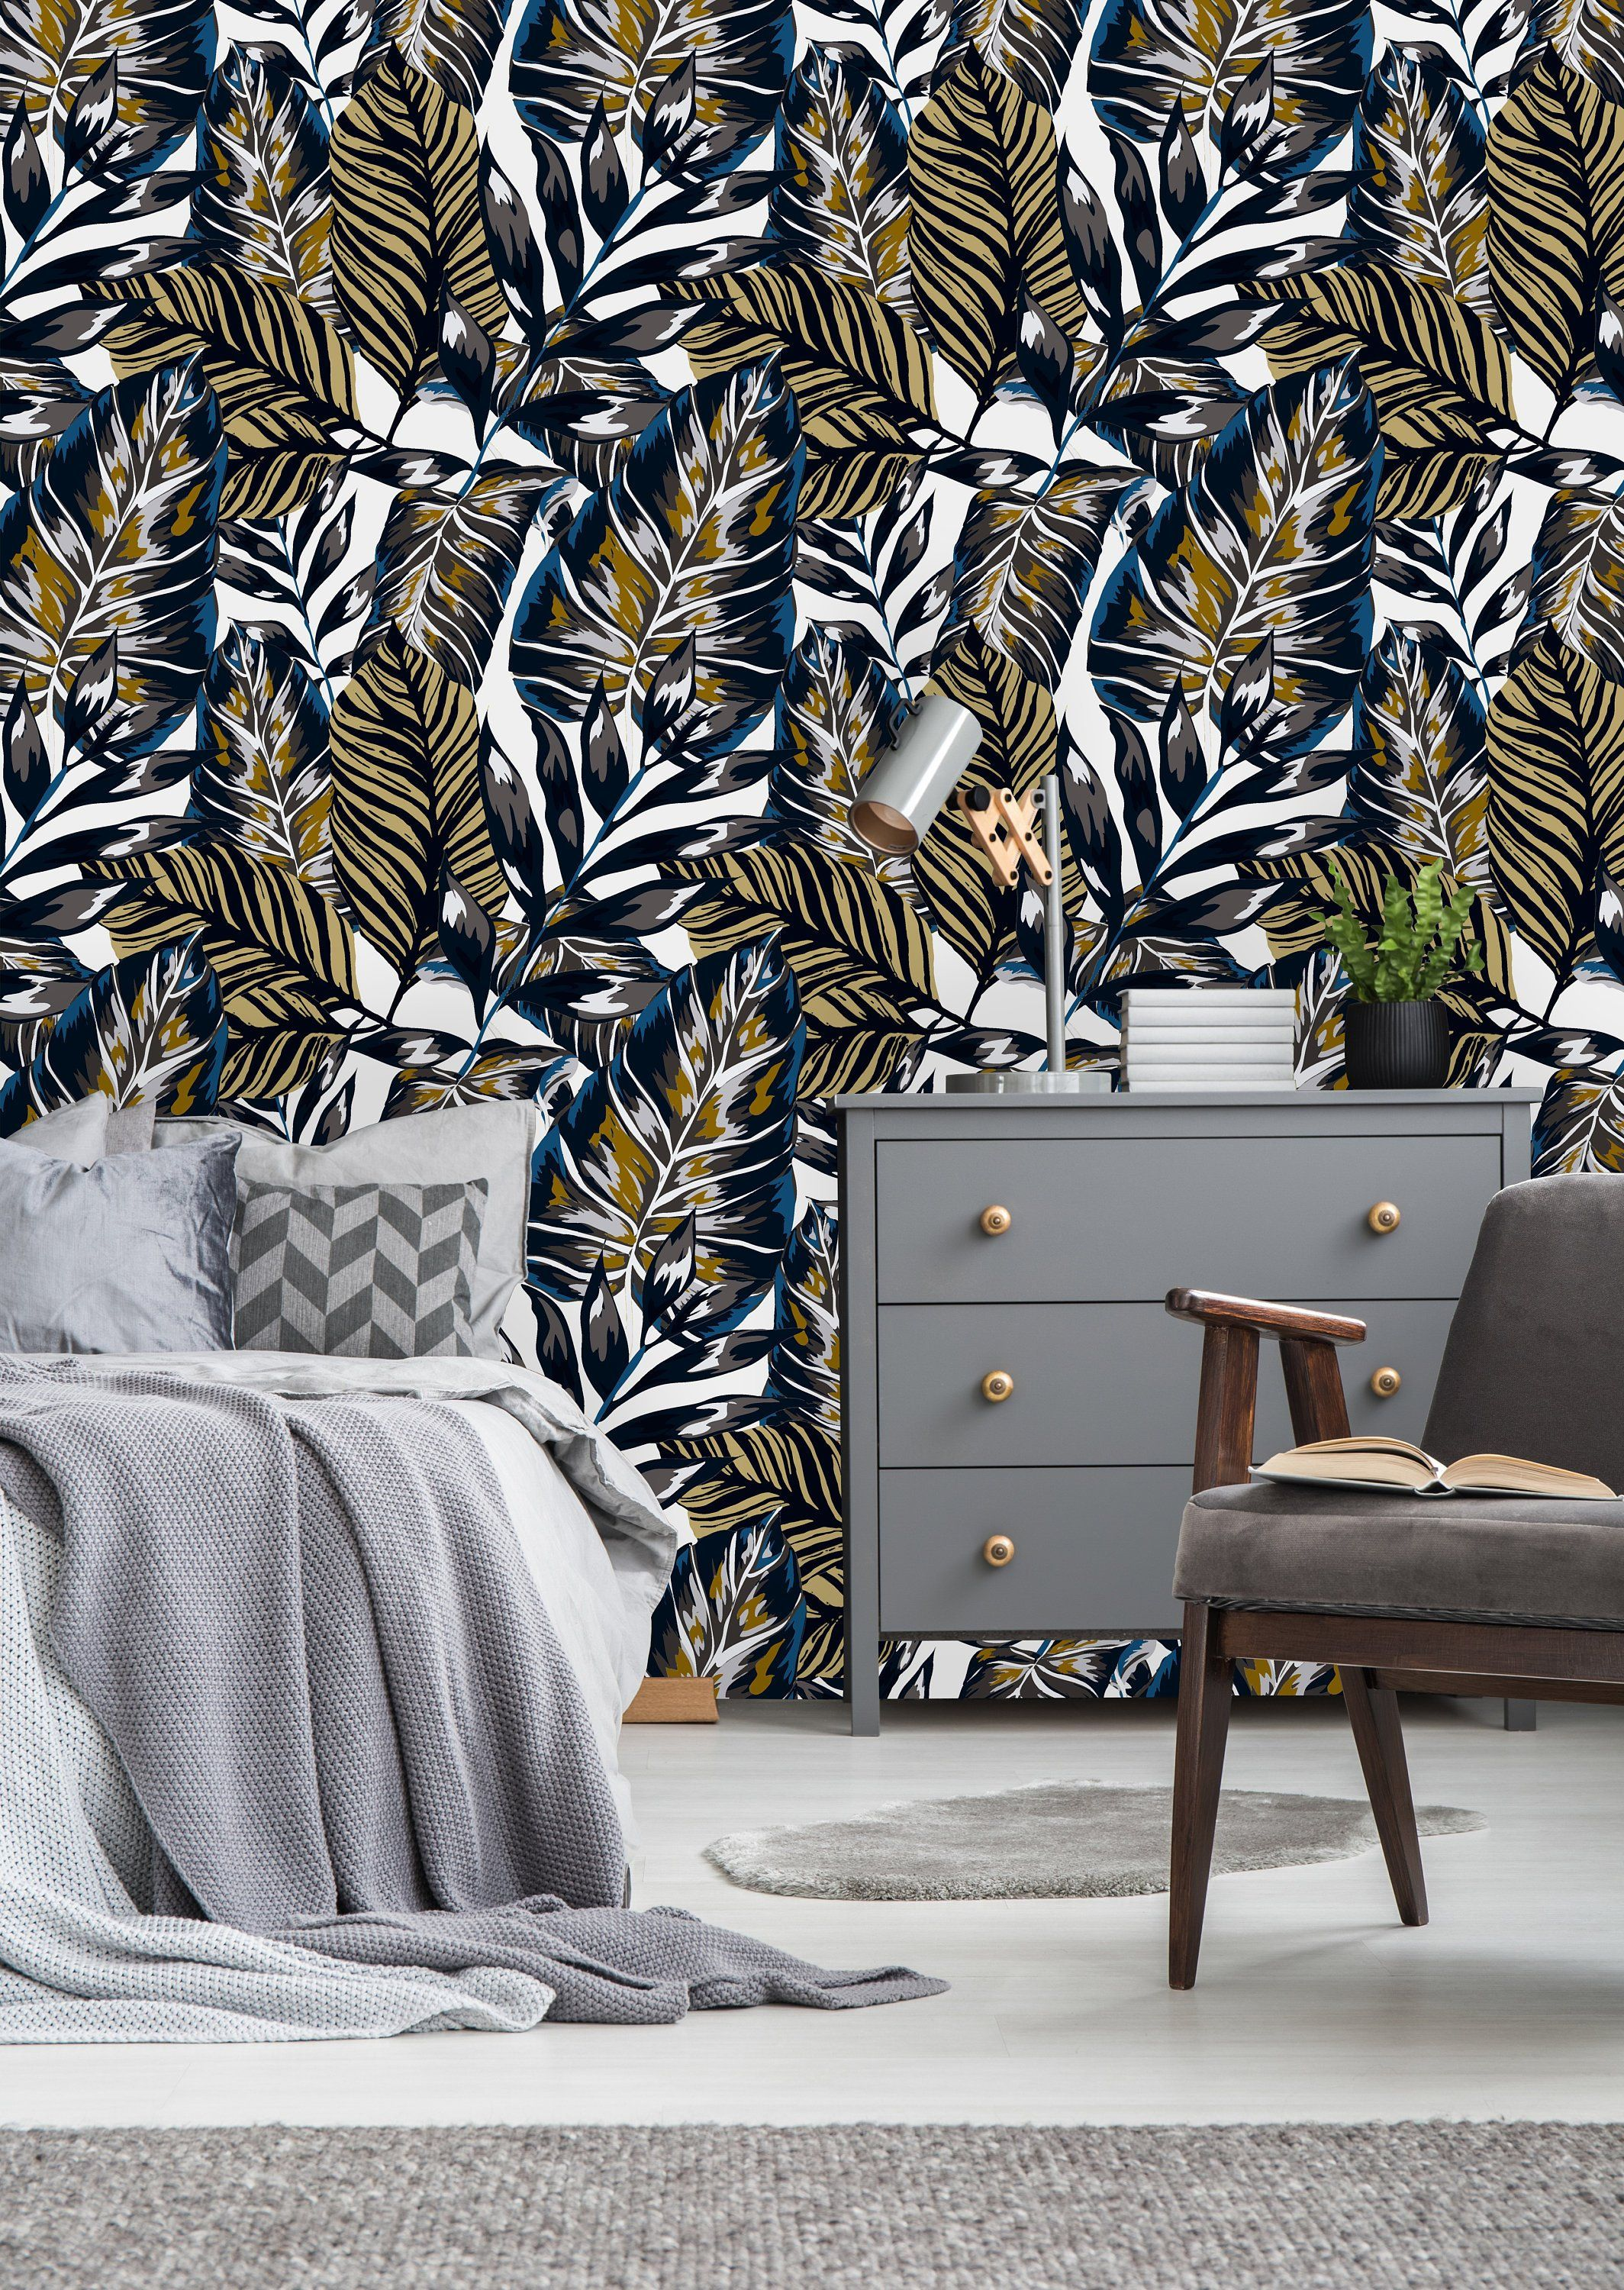 Gold Banana Leaves Removable WallpaperPeel and Stick